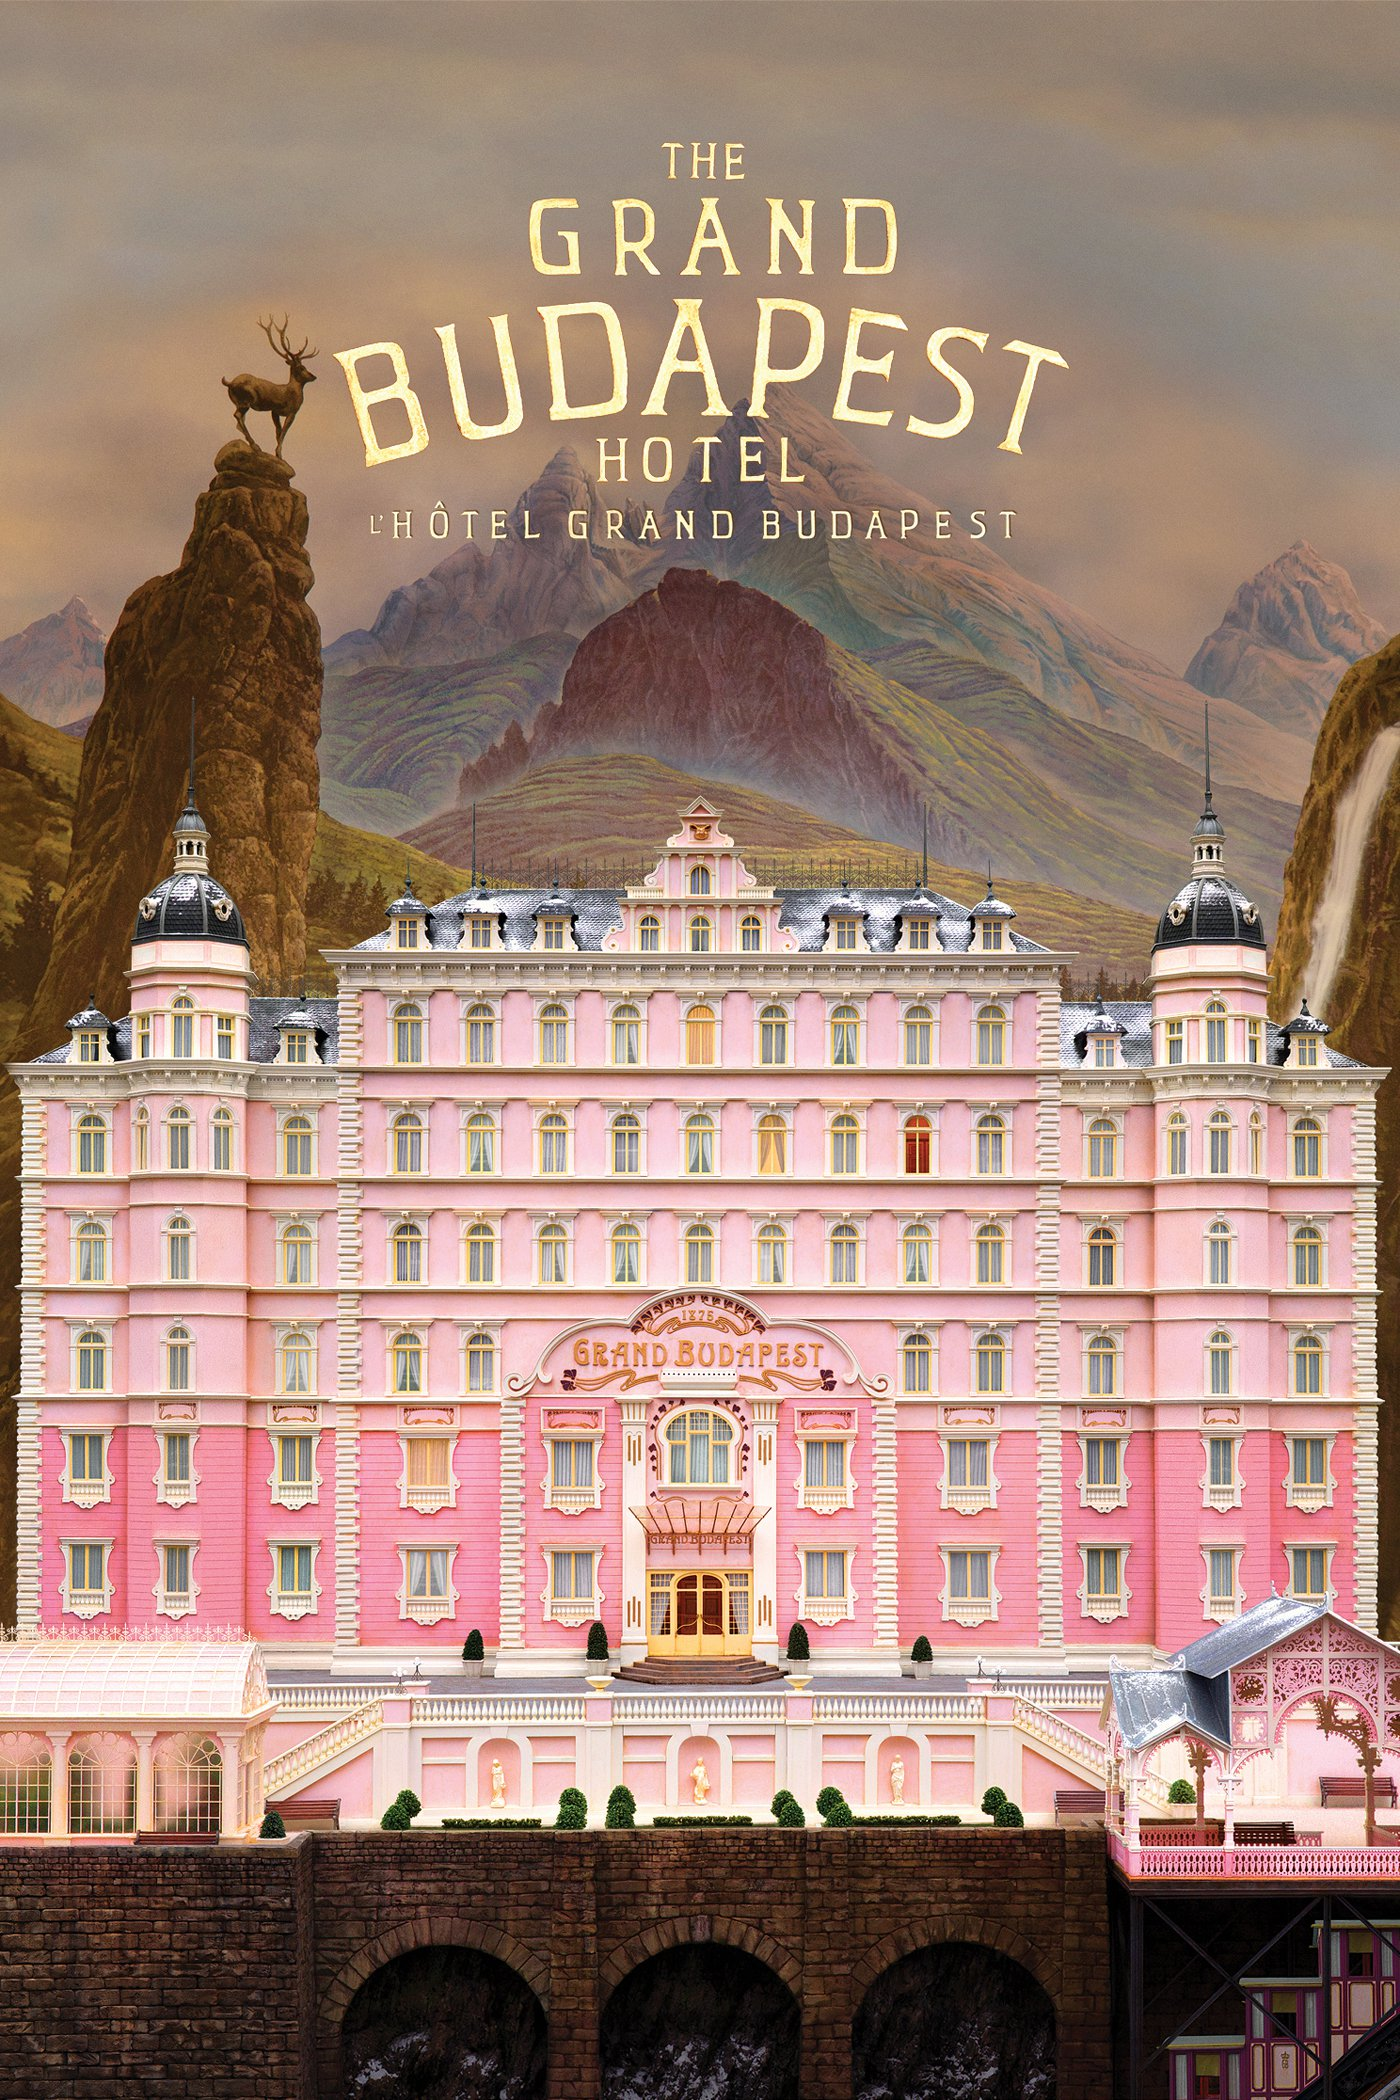 Grand Budapest Hotel Quotes Quotes Of The Grand Budapest Hotel  Quotesaga